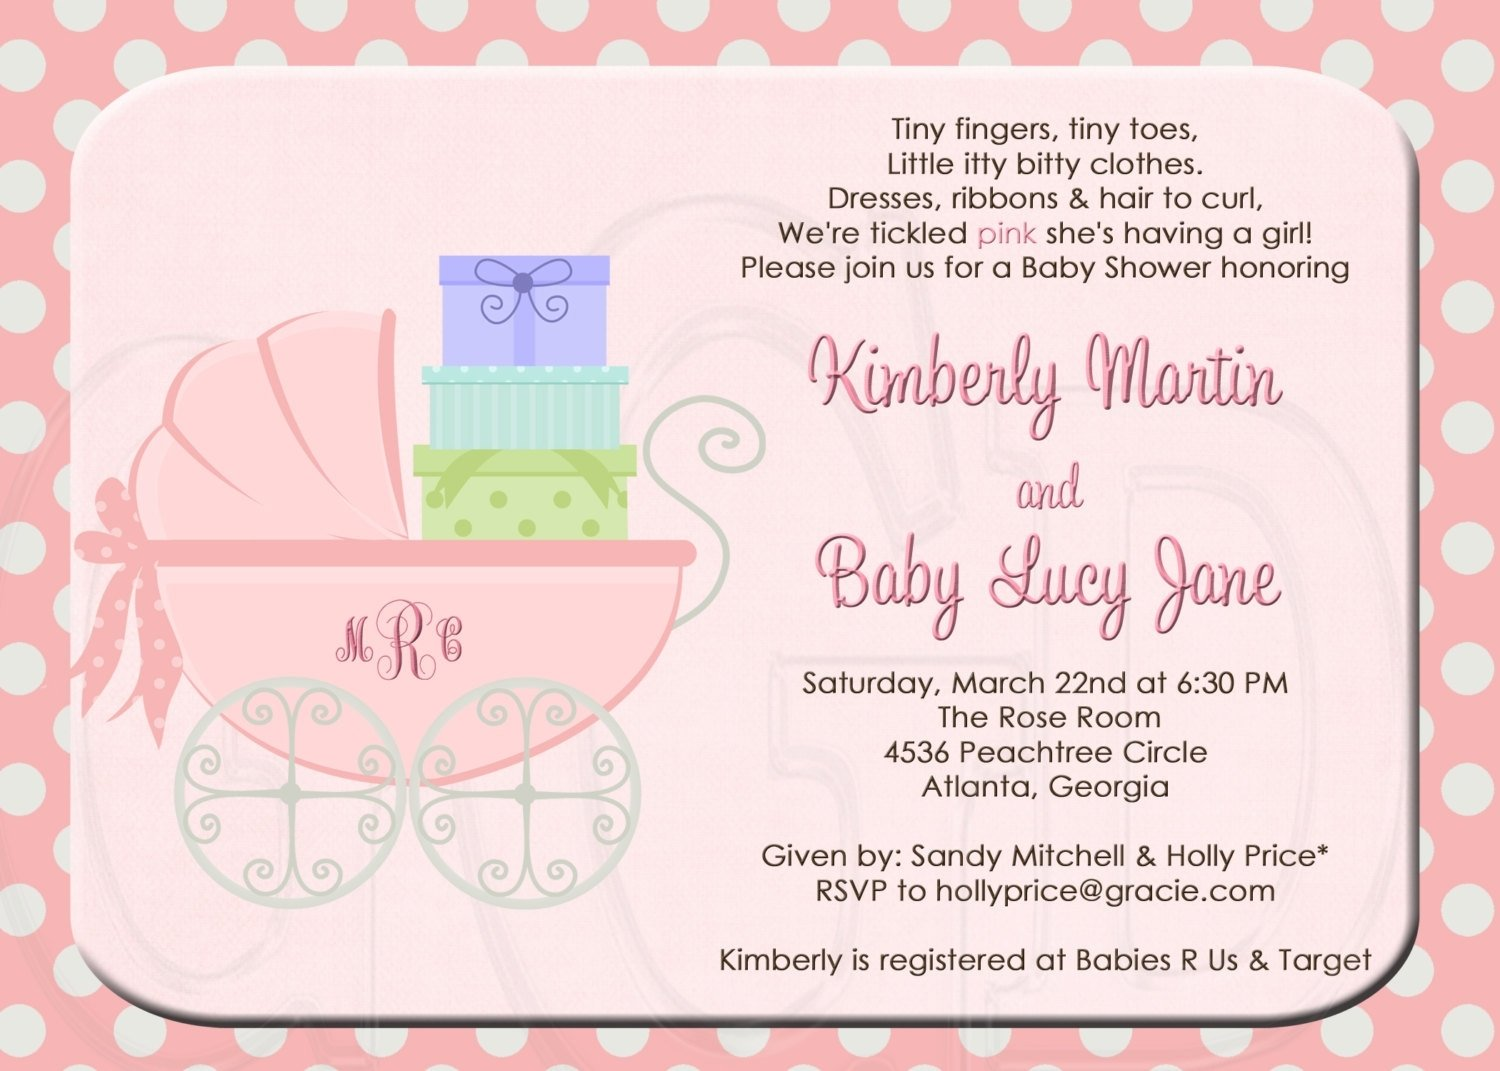 10 Attractive Invitation Ideas For Baby Shower baby shower invitation words roberto mattni co 2020